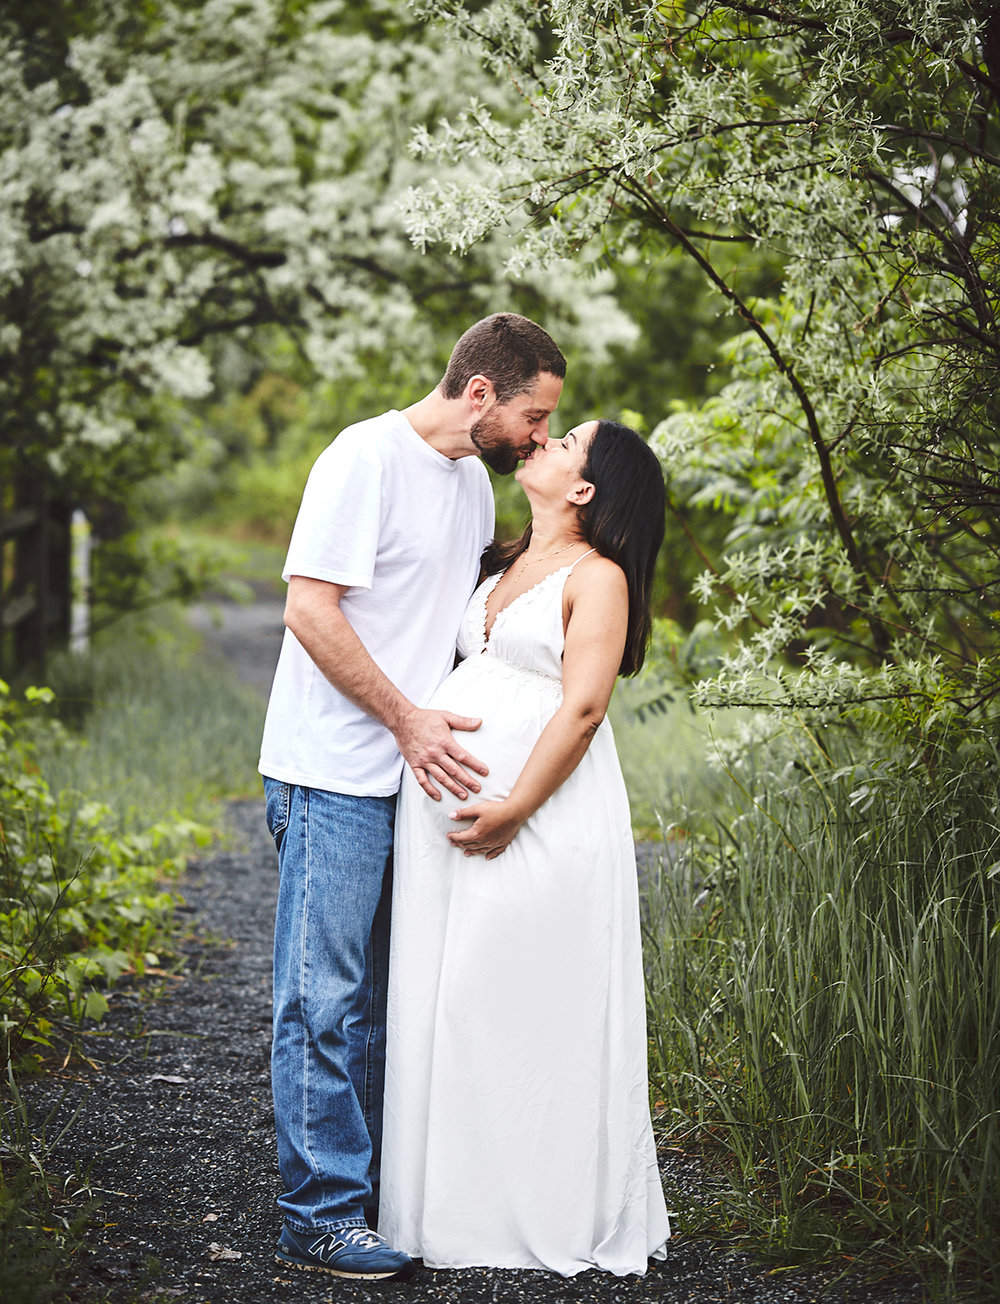 180517_NYCMaternityPhotography_By_BriJohnsonWeddings_0008.jpg